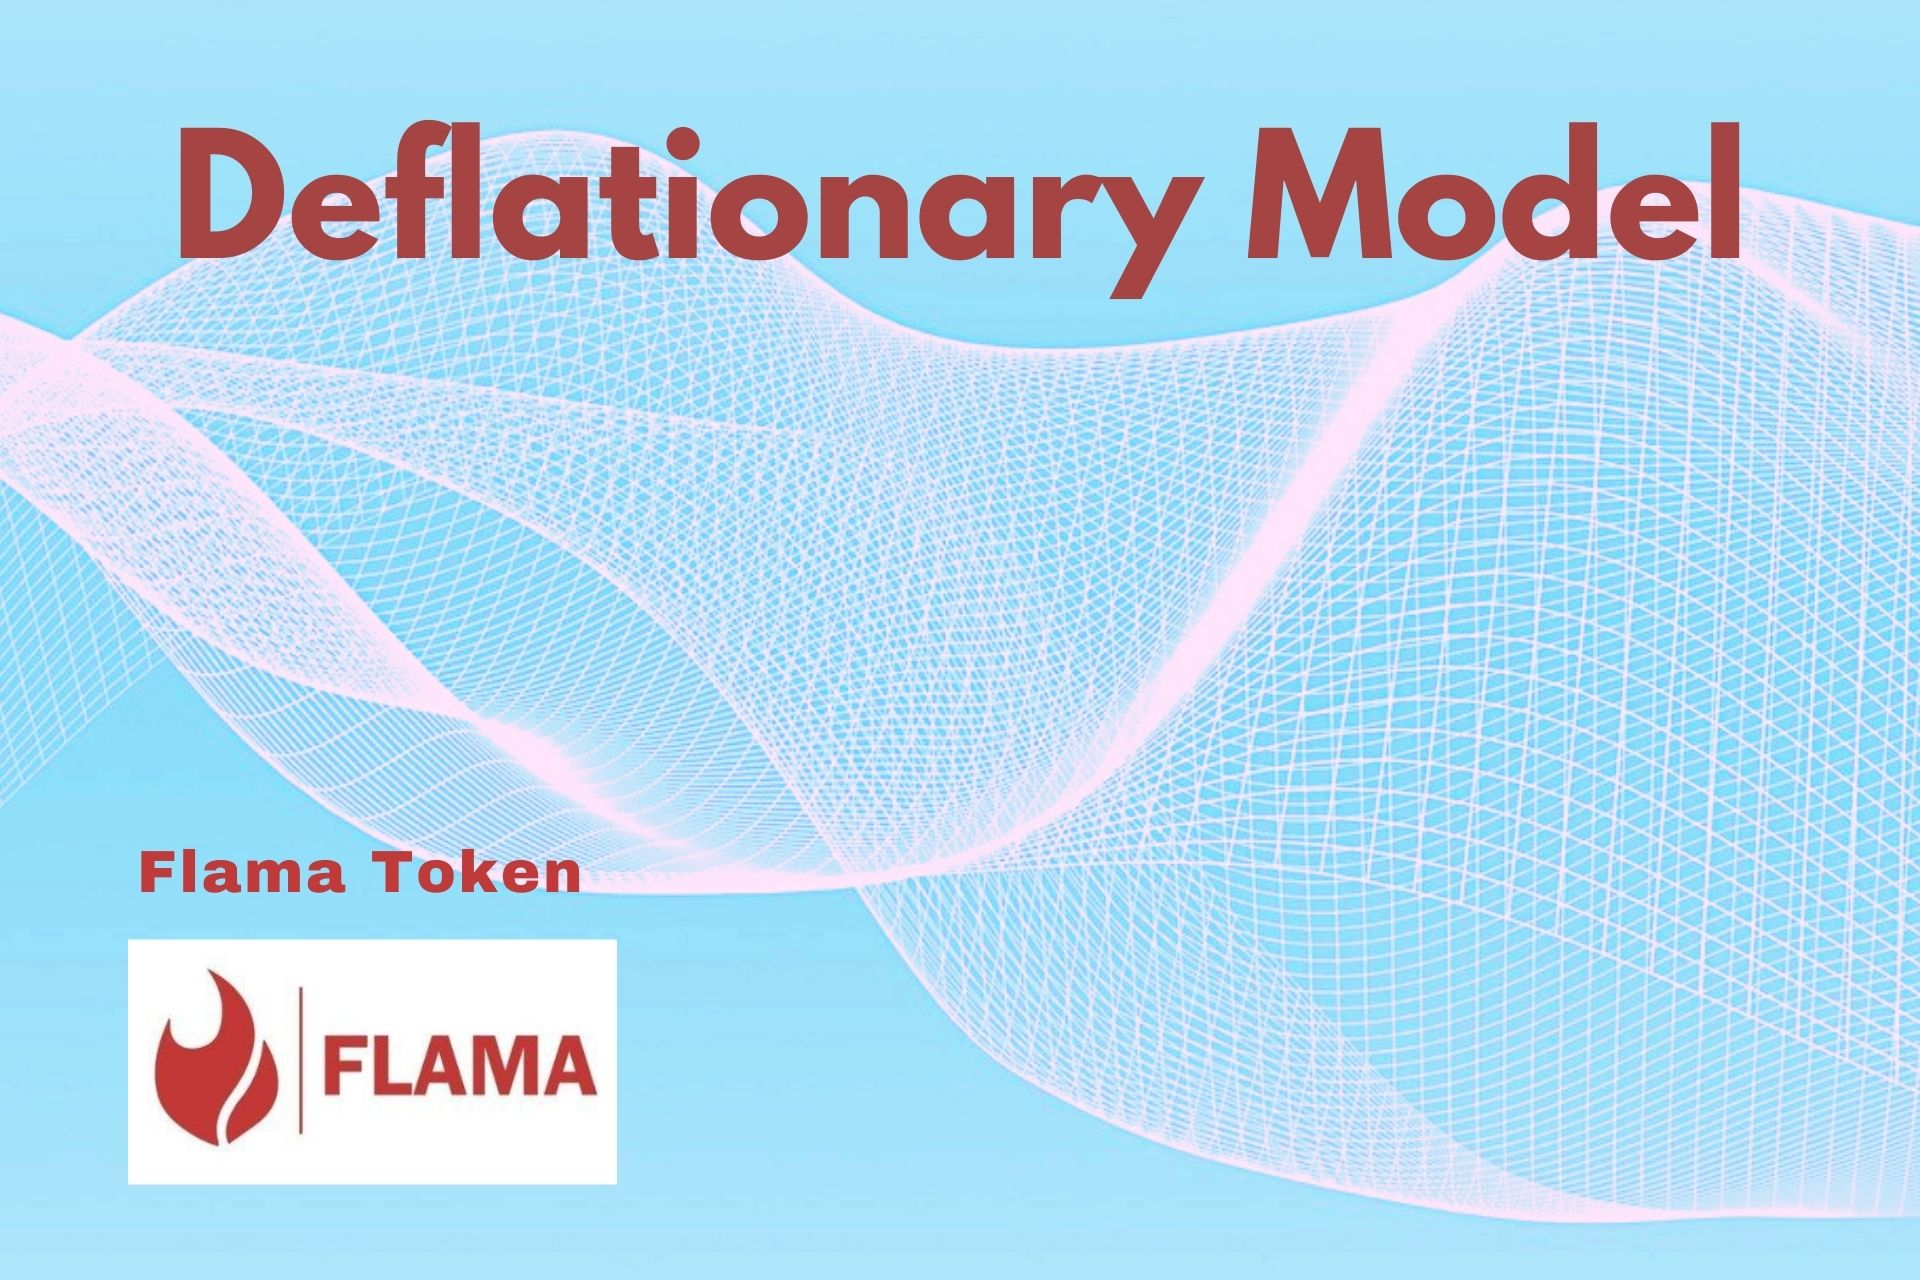 The Flama Token – A Deflationary Token with Real World Use Cases